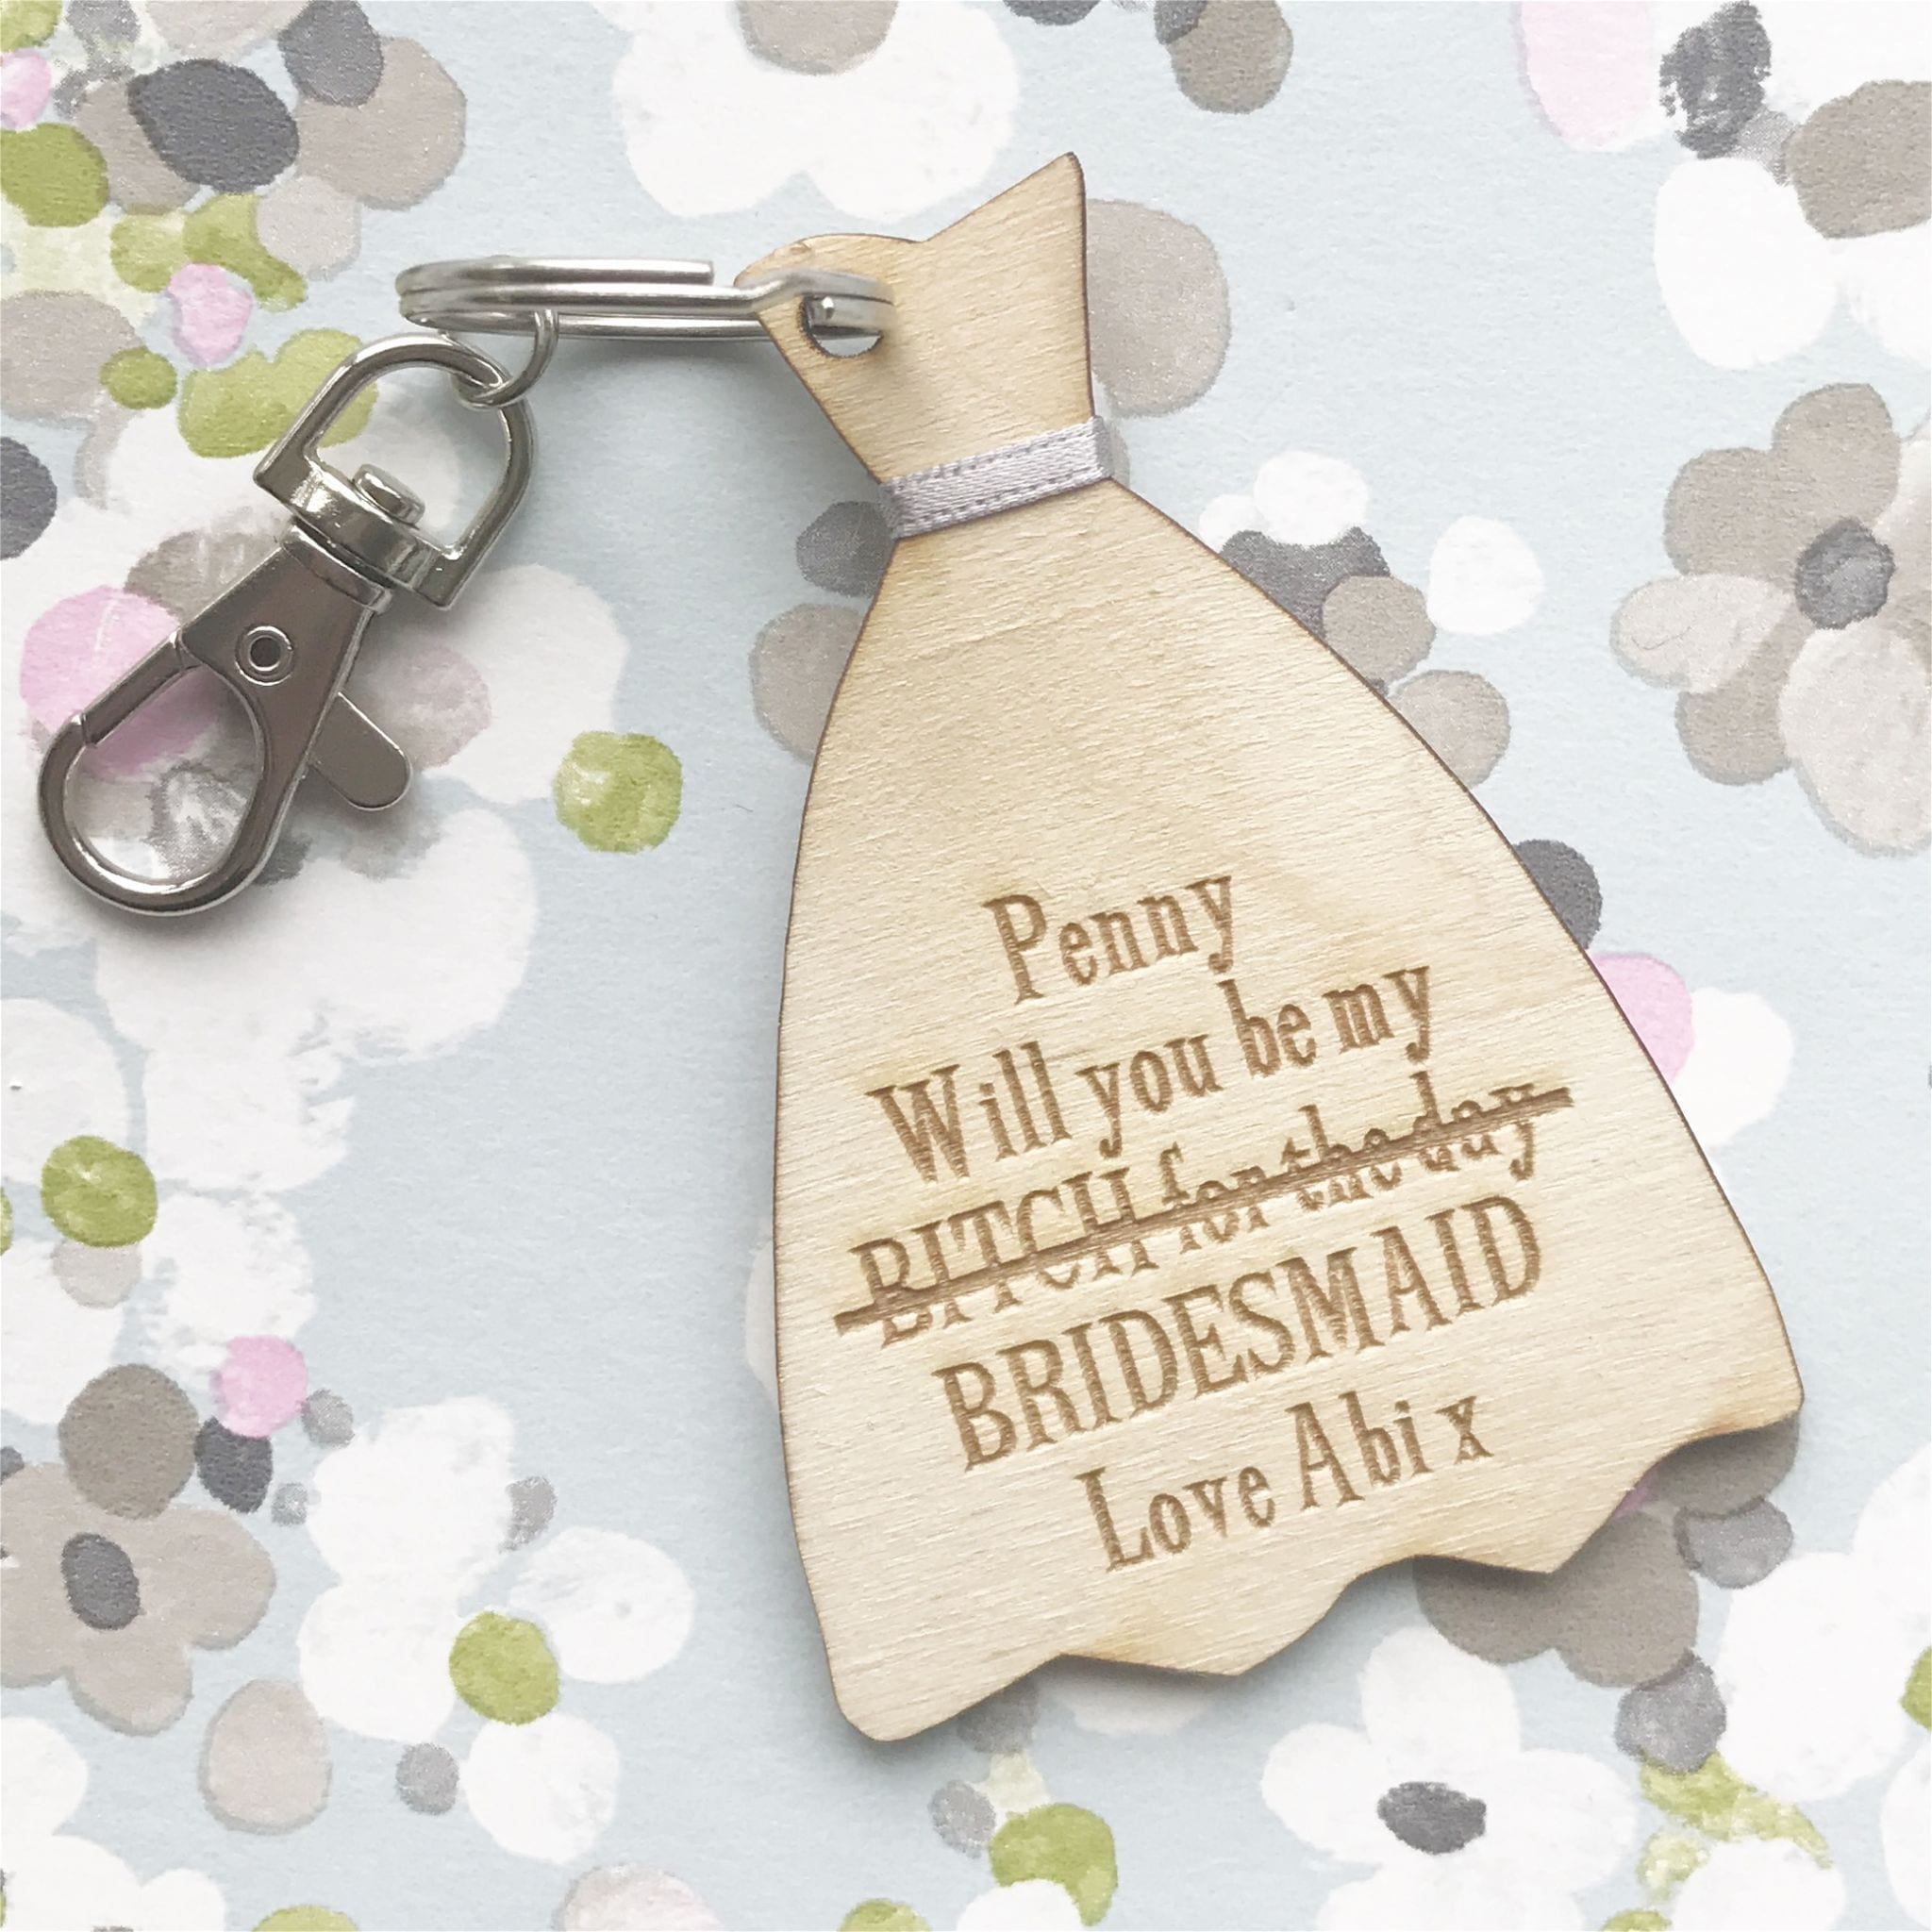 will-you-be-my-bridesmaid-dress-keyring-or-magnet-20064-p.jpg